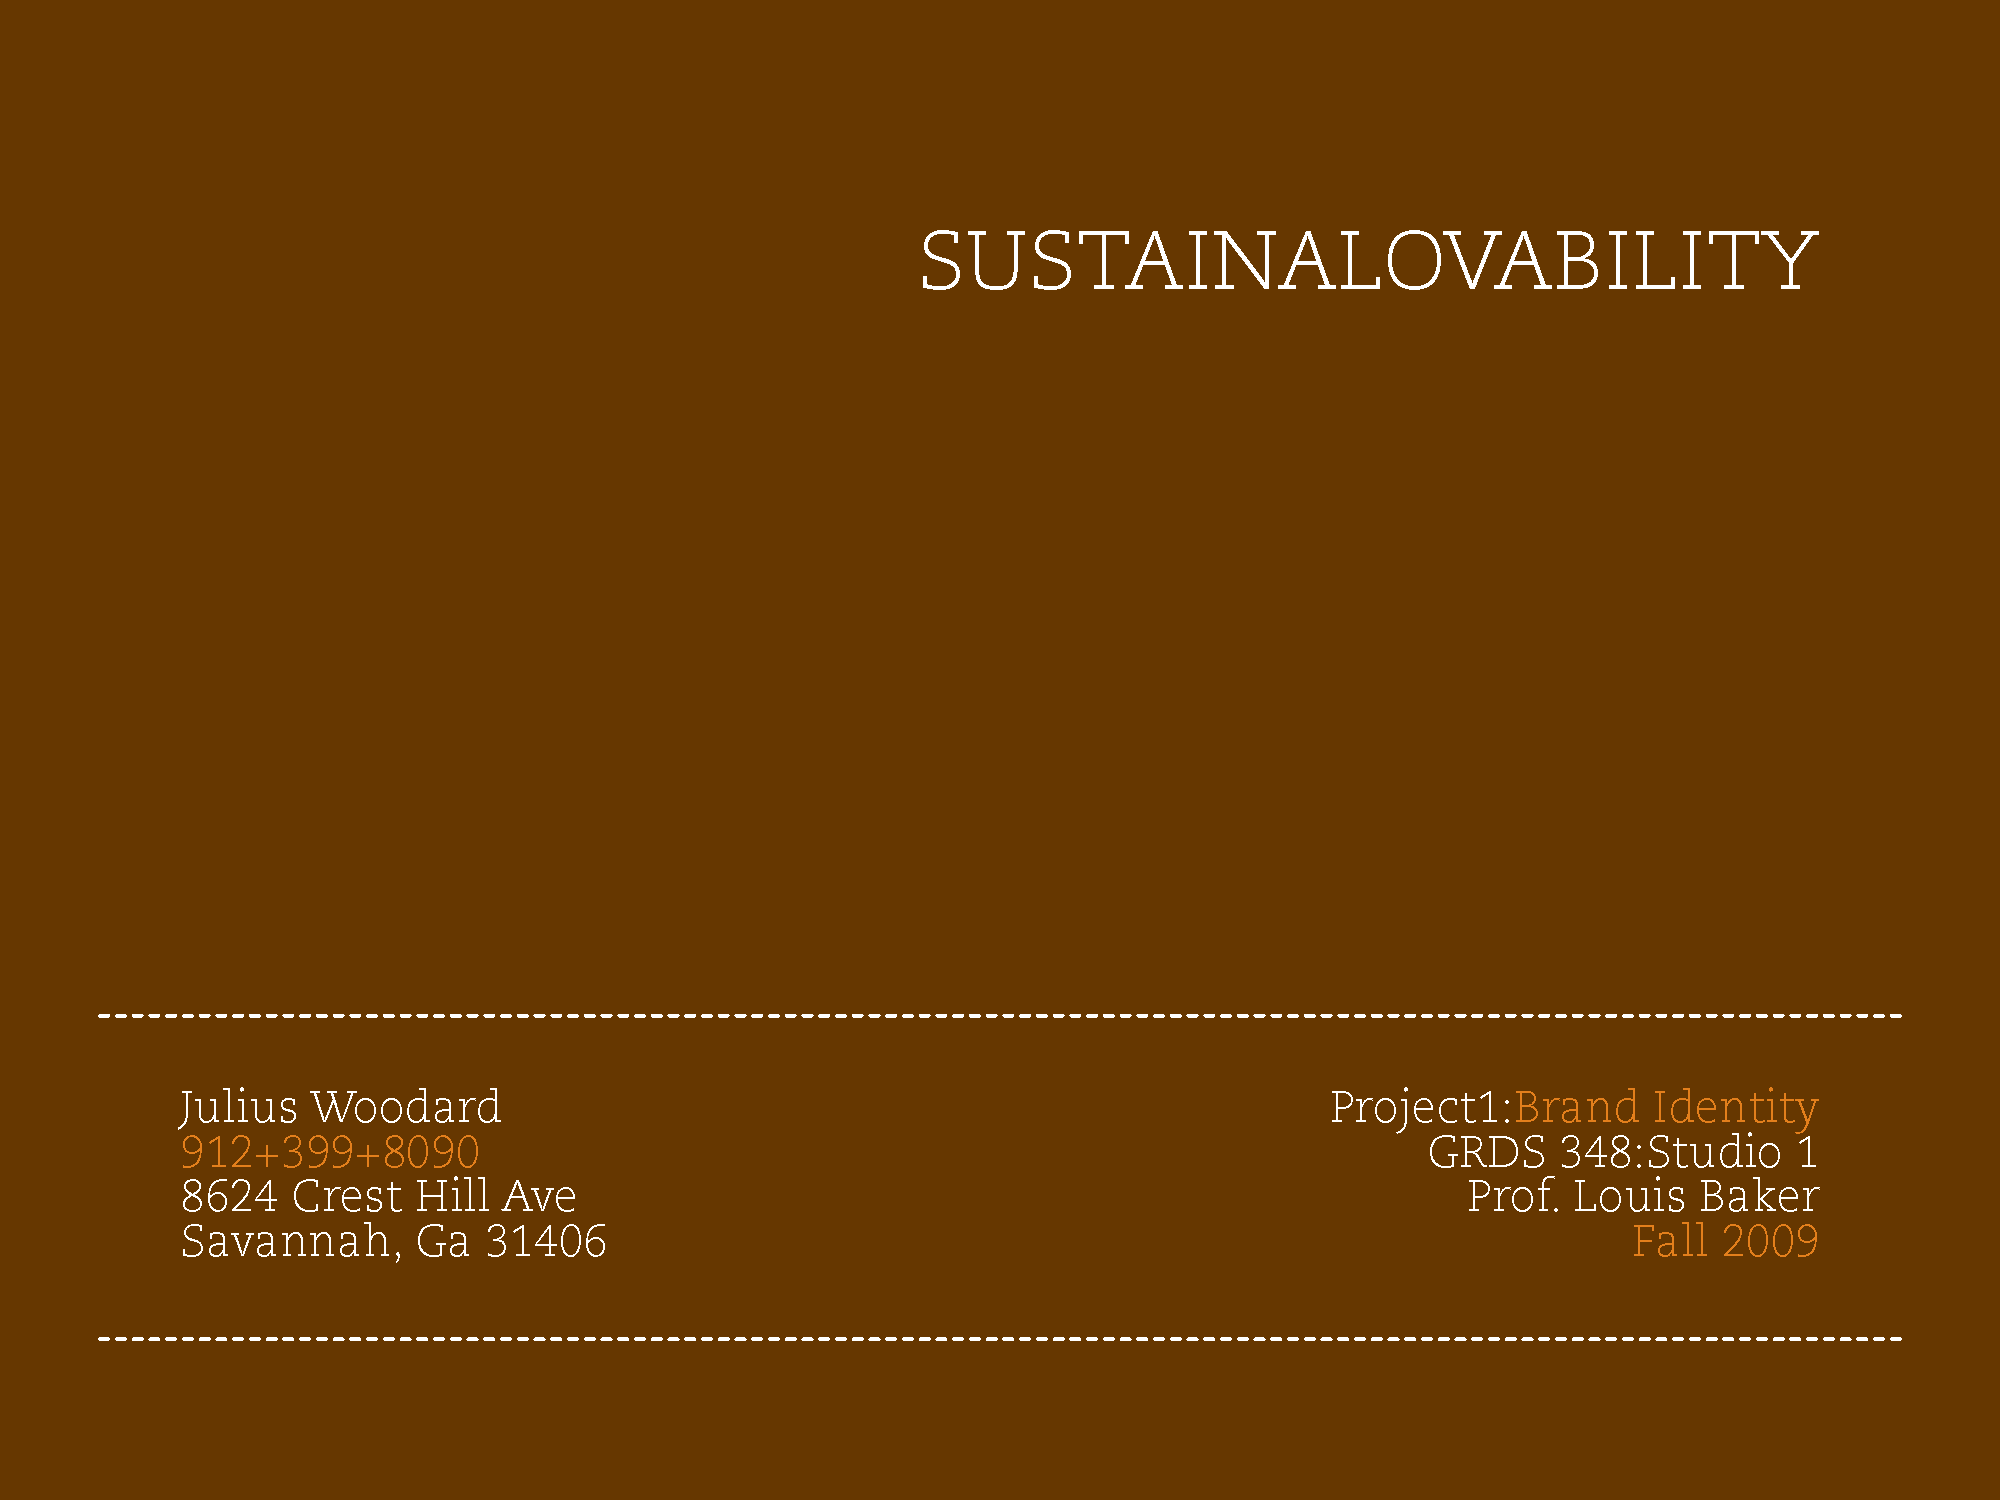 sustainalovability_identity copy_Page_01.png